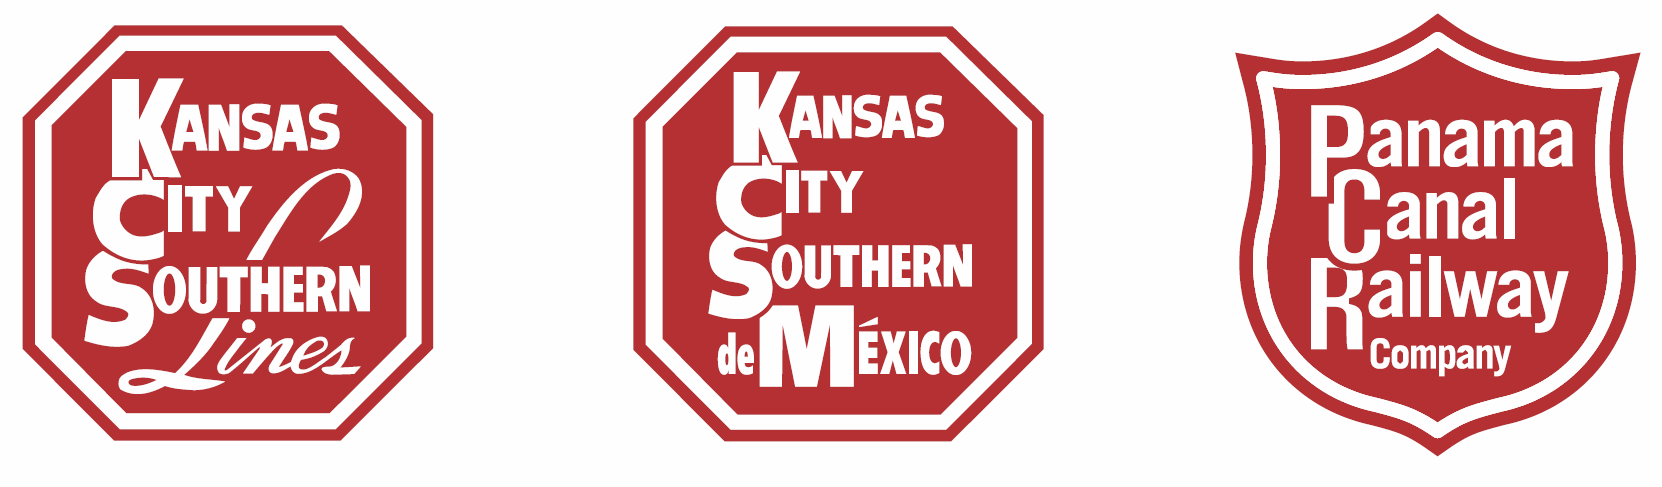 file kansas city southern logo png wikimedia commons mexican logos pictures mexican logos for restaurant